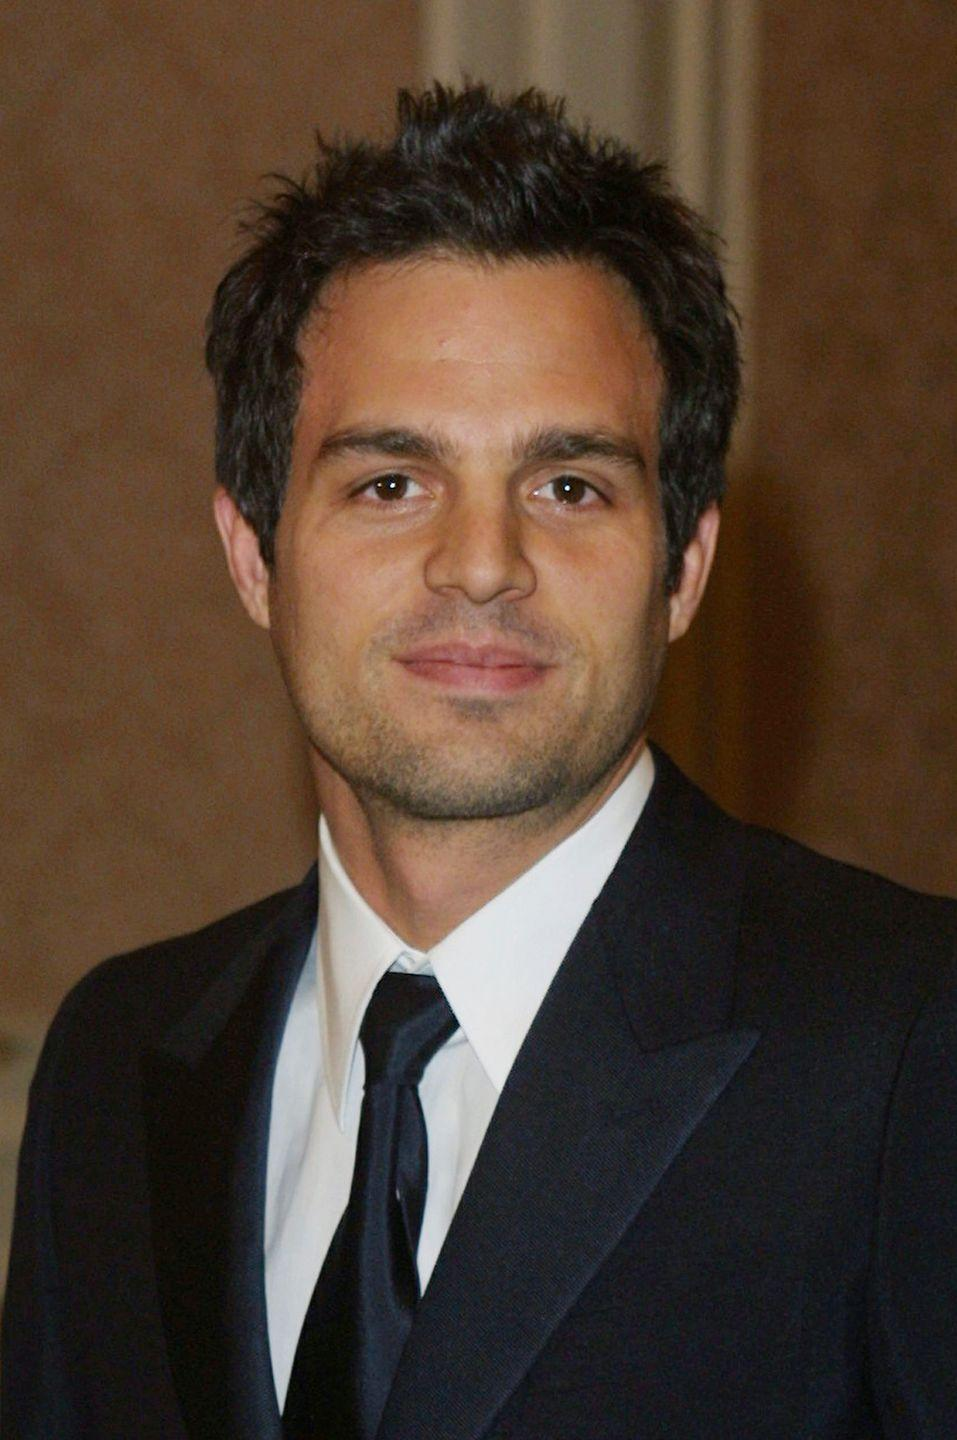 <p>Before he was the Hulk, Mark Ruffalo's short and spiky brown hair was part of his signature look. </p>